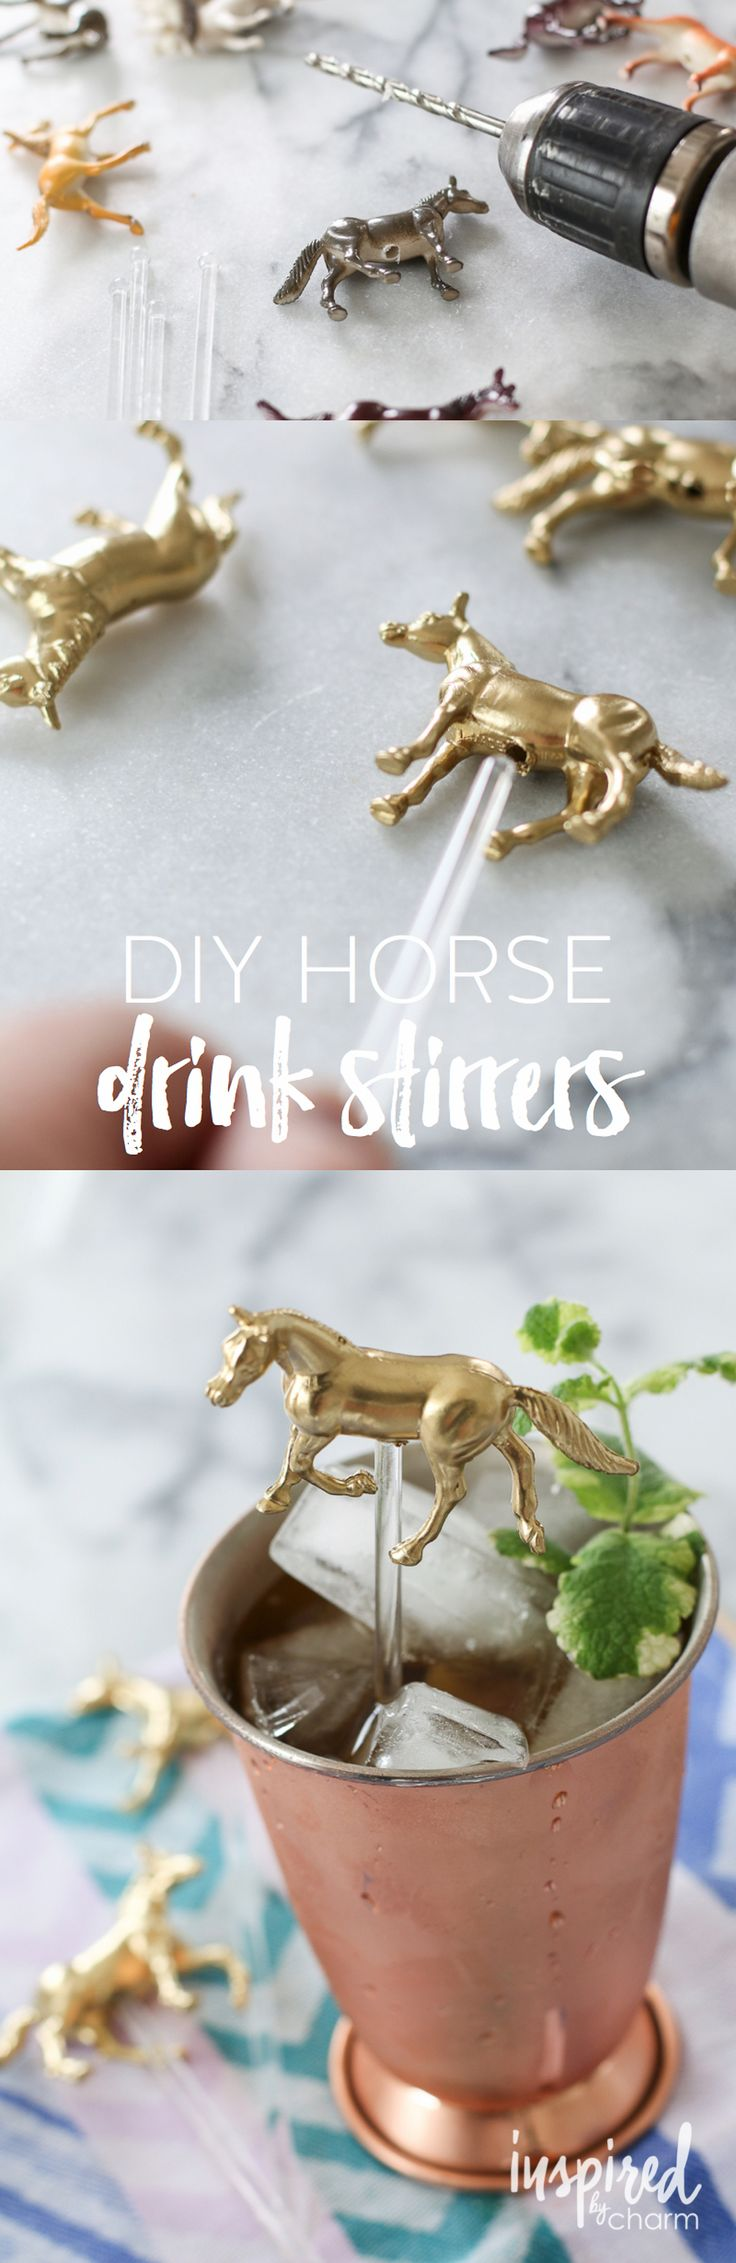 DIY Horse Drink Stirrers - perfect for the Kentucky Derby, but fun for any celebration.